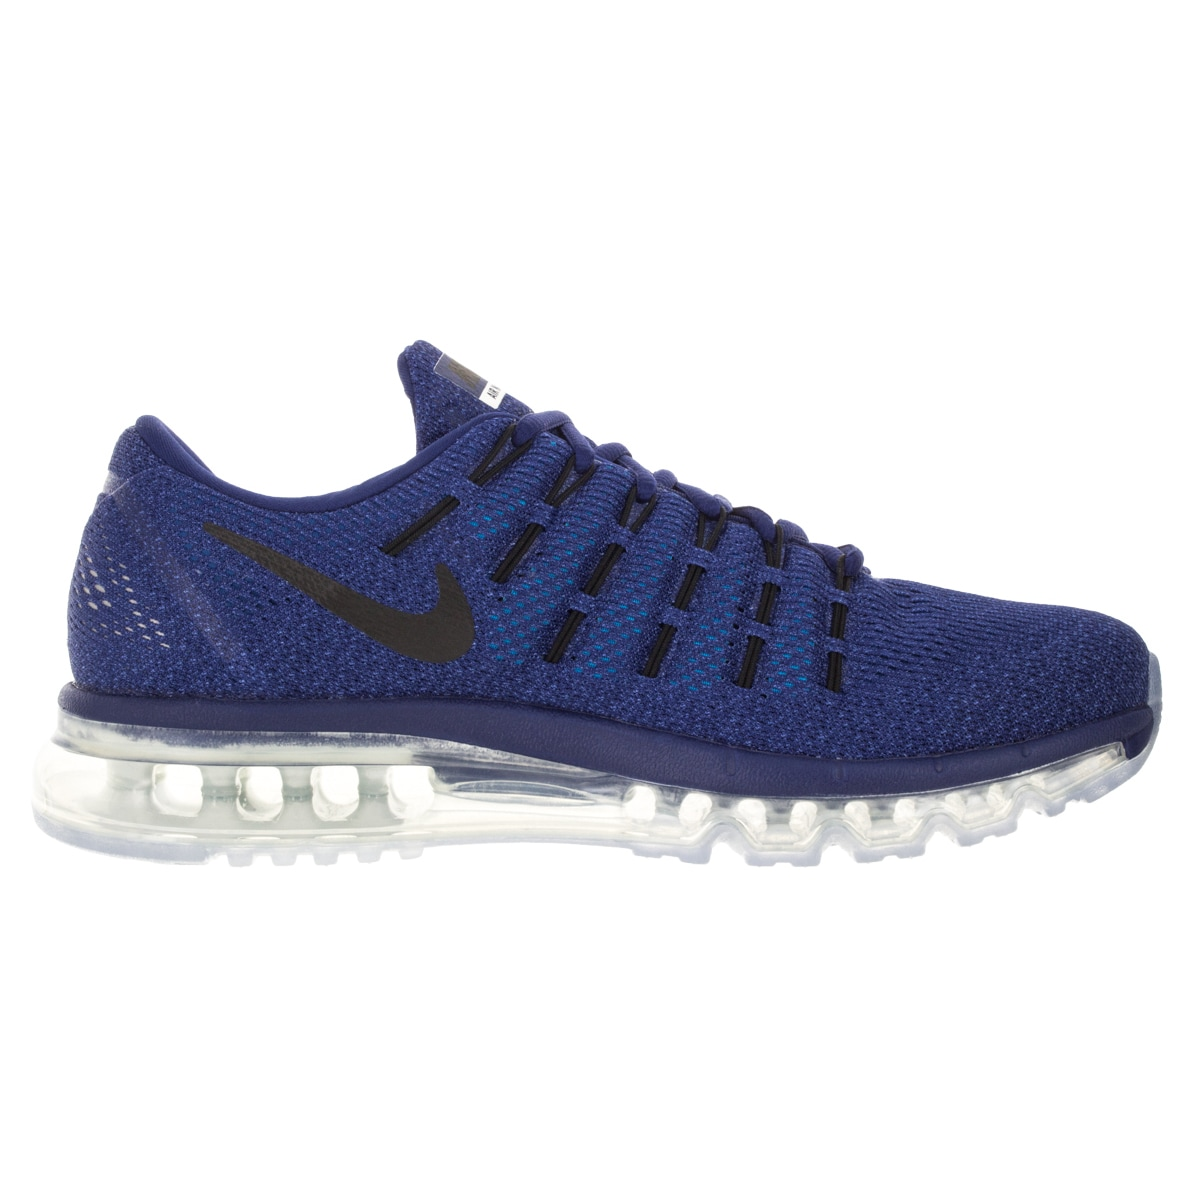 Nike Men's Air Max 2016 Royal BlueueBlack Running Shoe